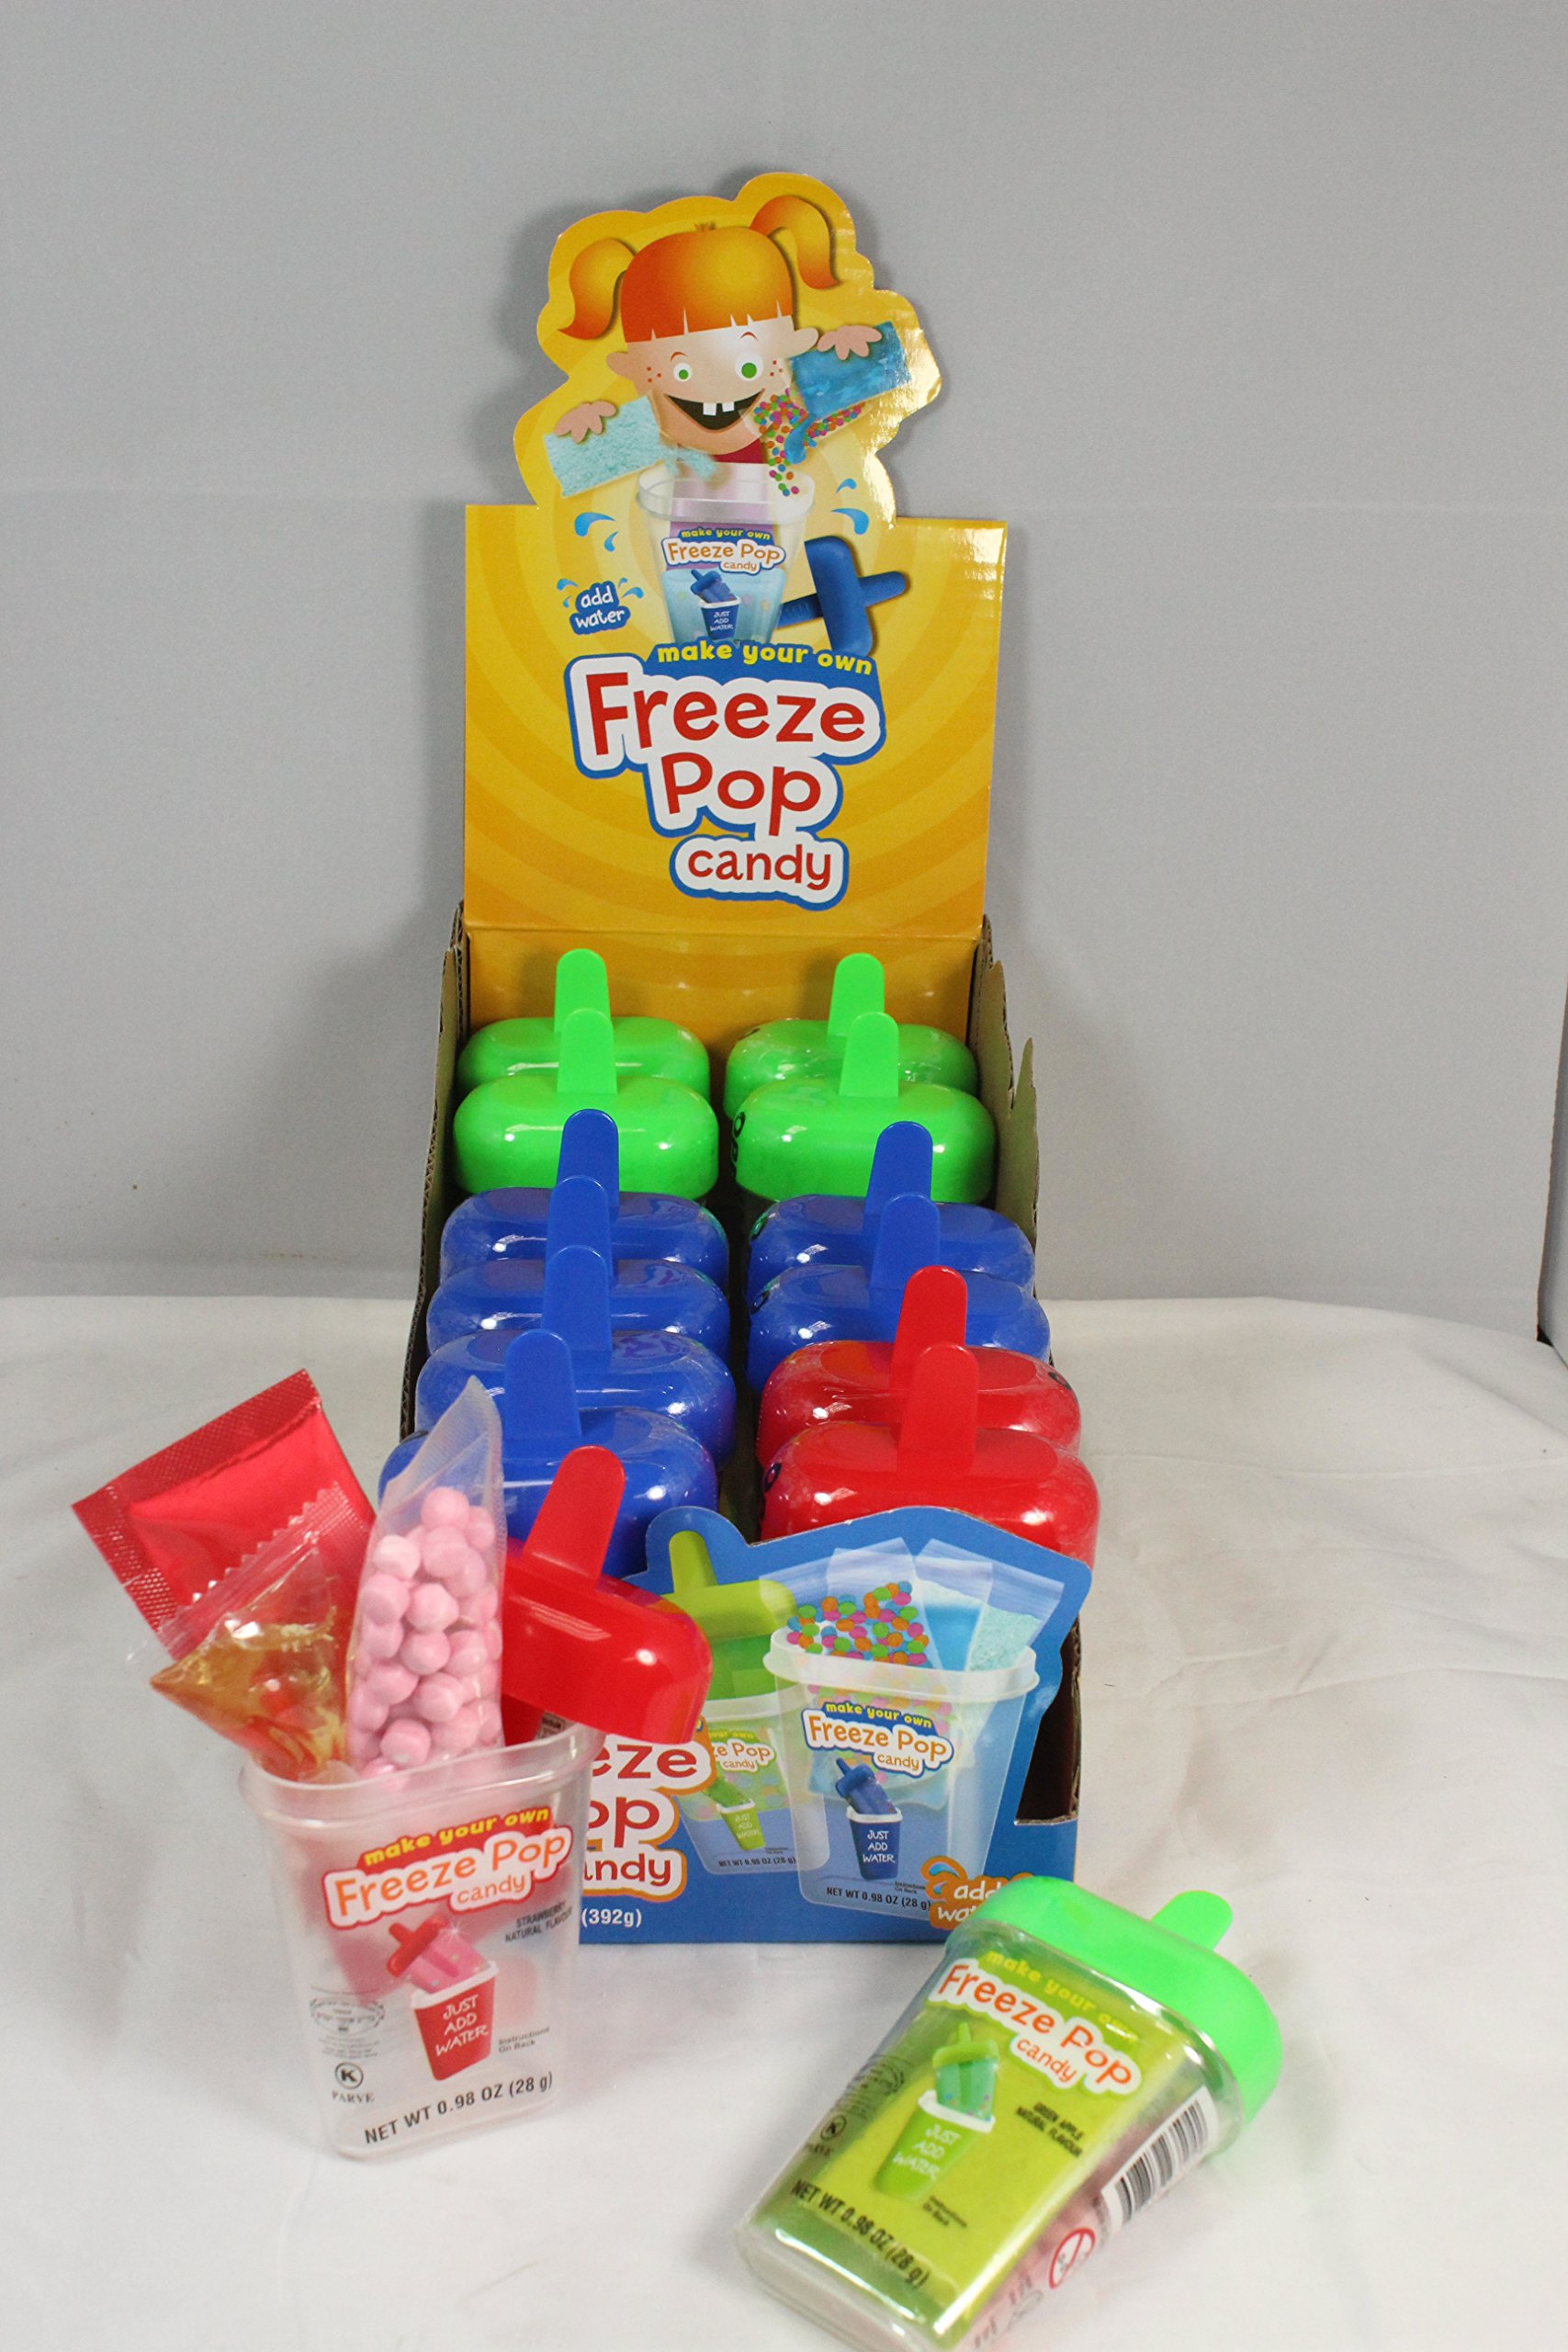 Freeze Pop candy, Certified Kosher. (Hapiness, usa) by 246 Foods